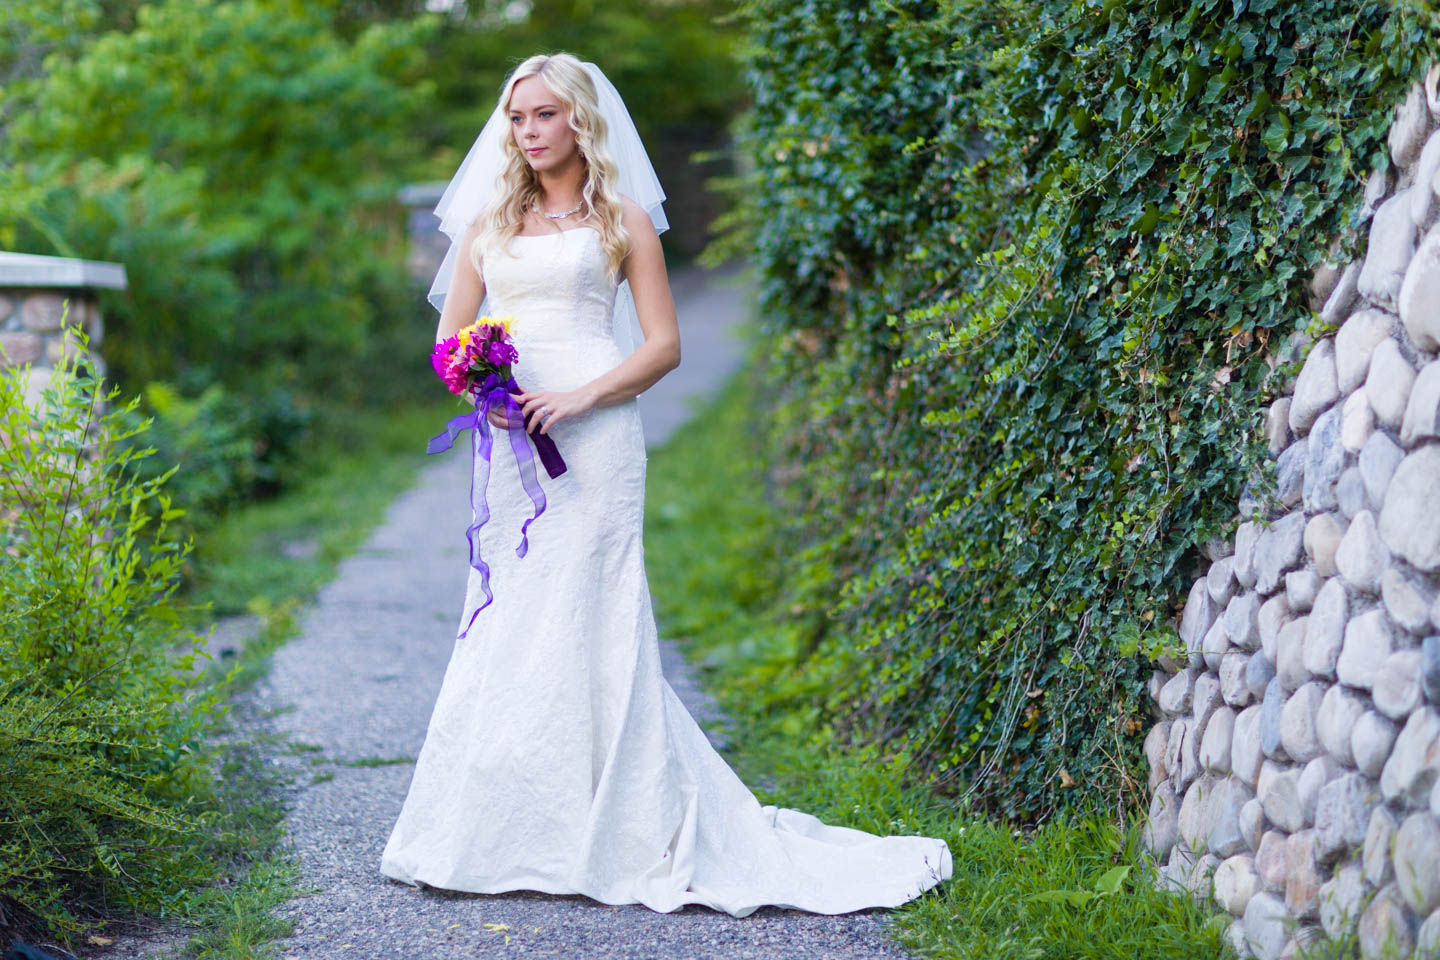 C.J.'s bridal photography